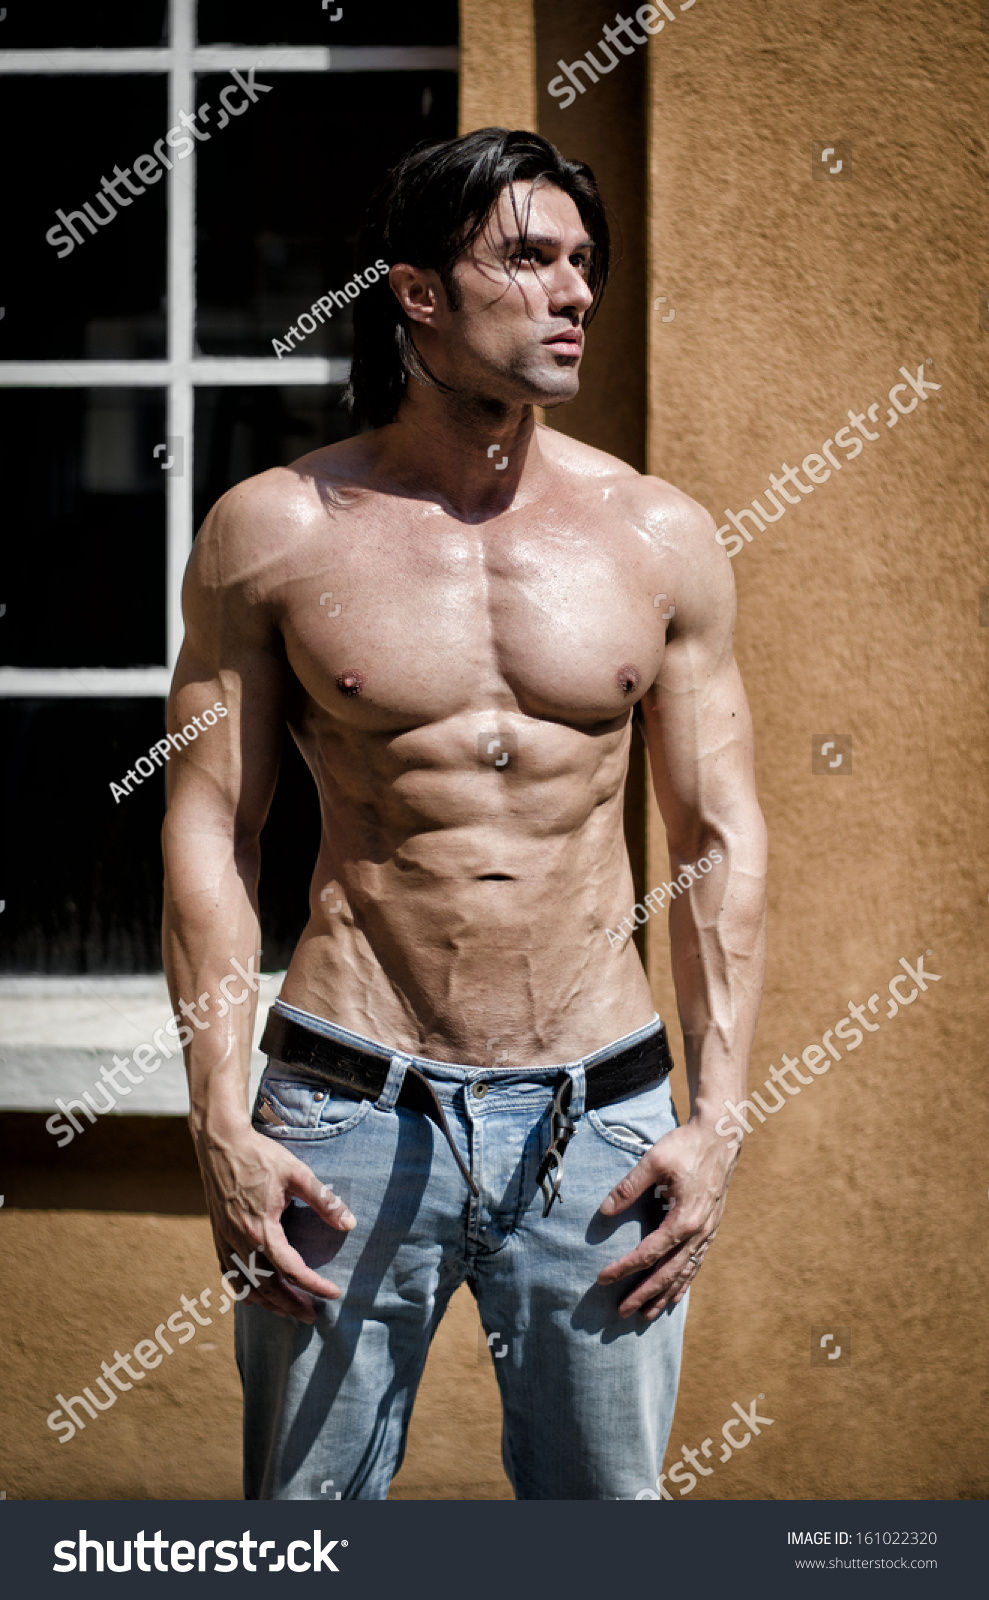 Handsome Young Muscle Man Naked Wearing Only Jeans And